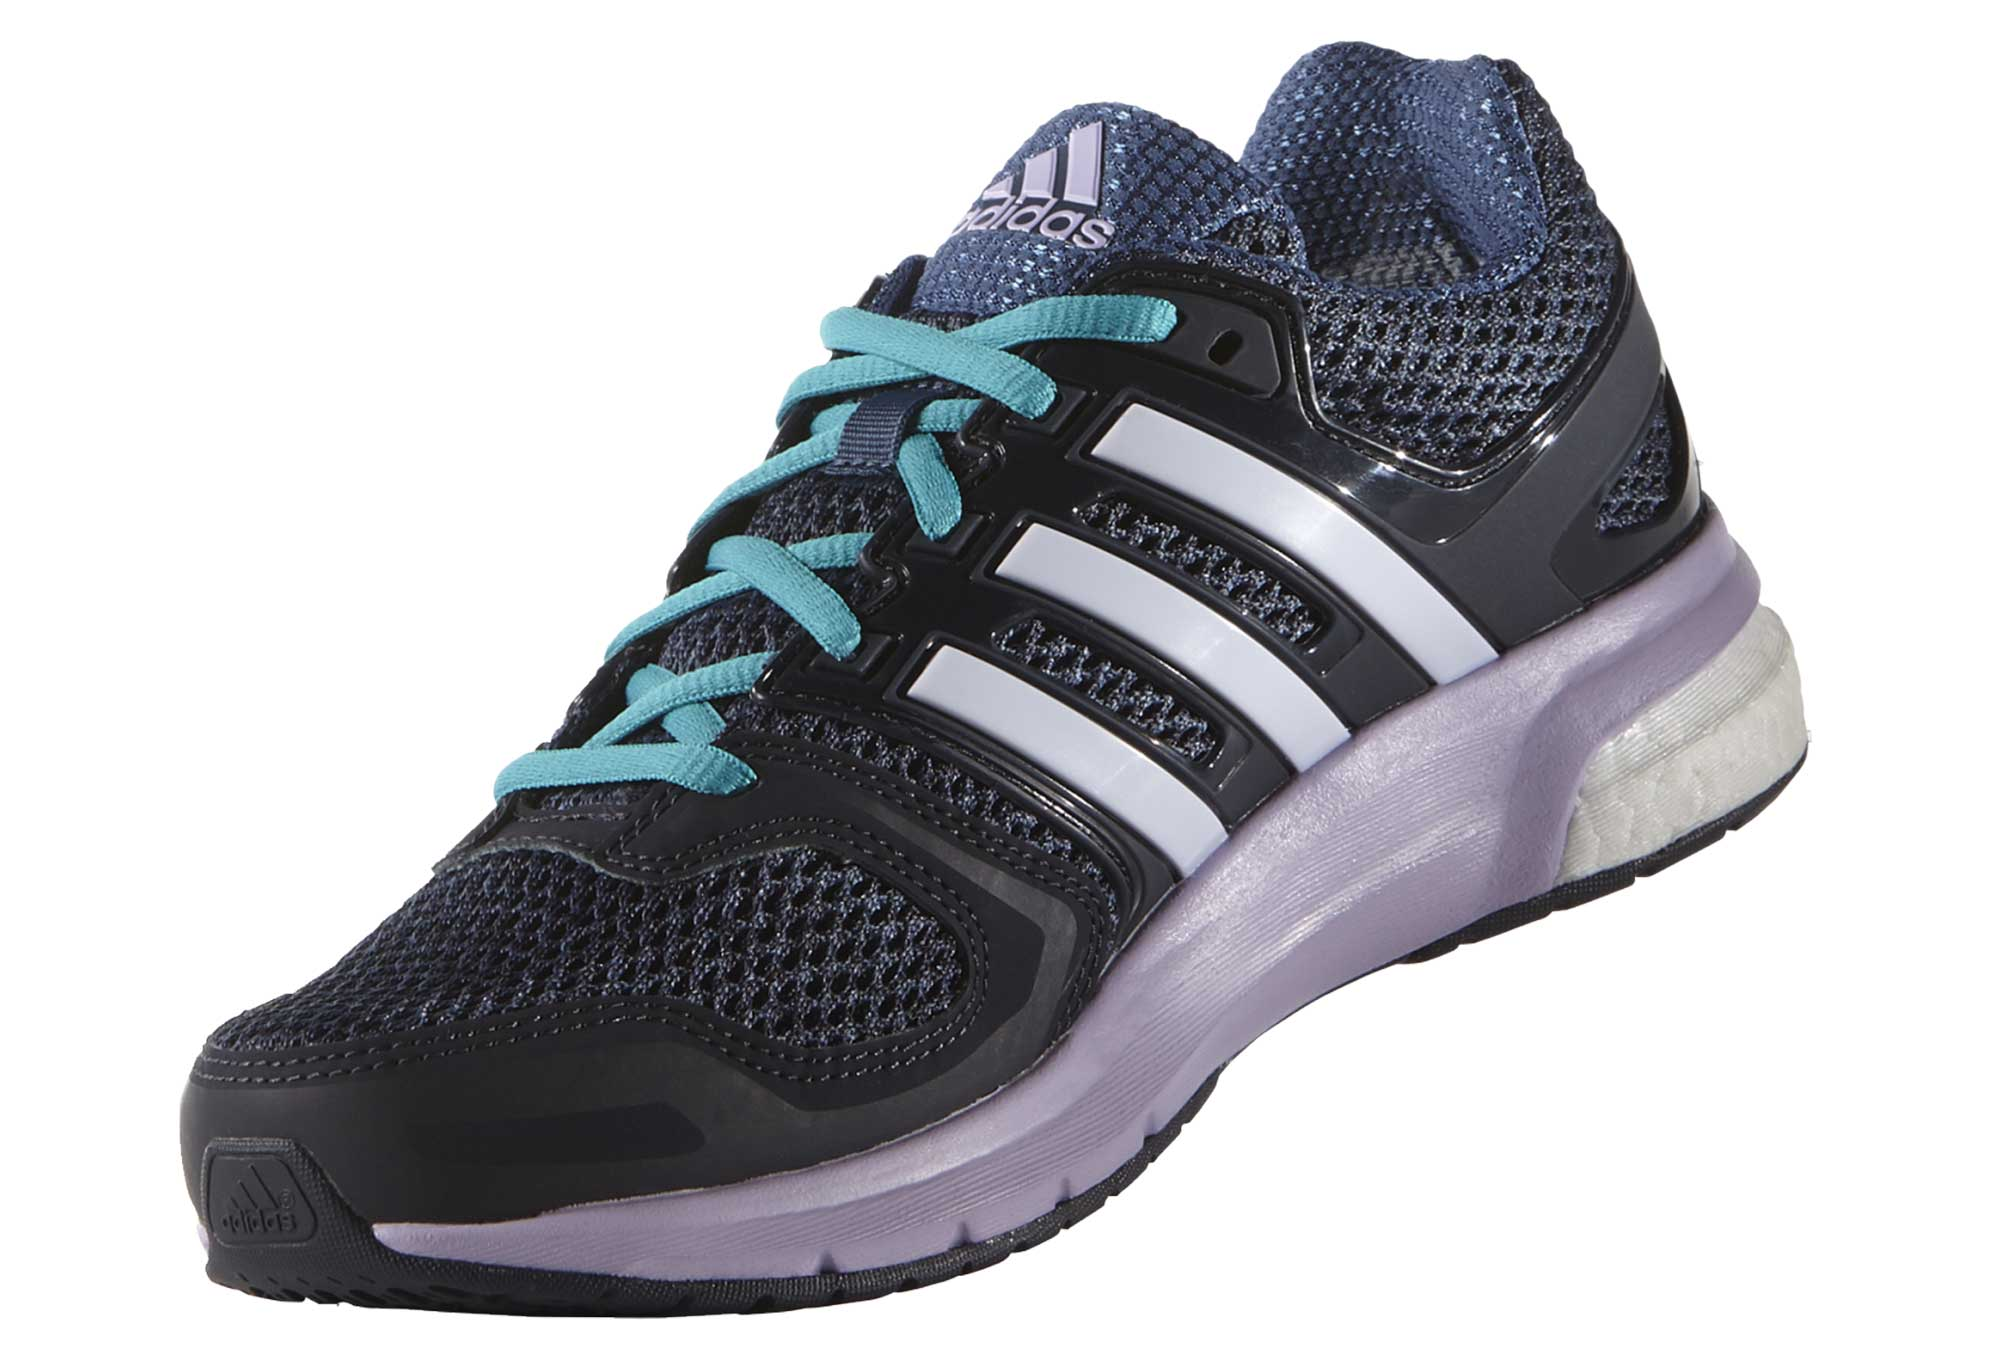 adidas questar boost pair of shoes purple blue women. Black Bedroom Furniture Sets. Home Design Ideas